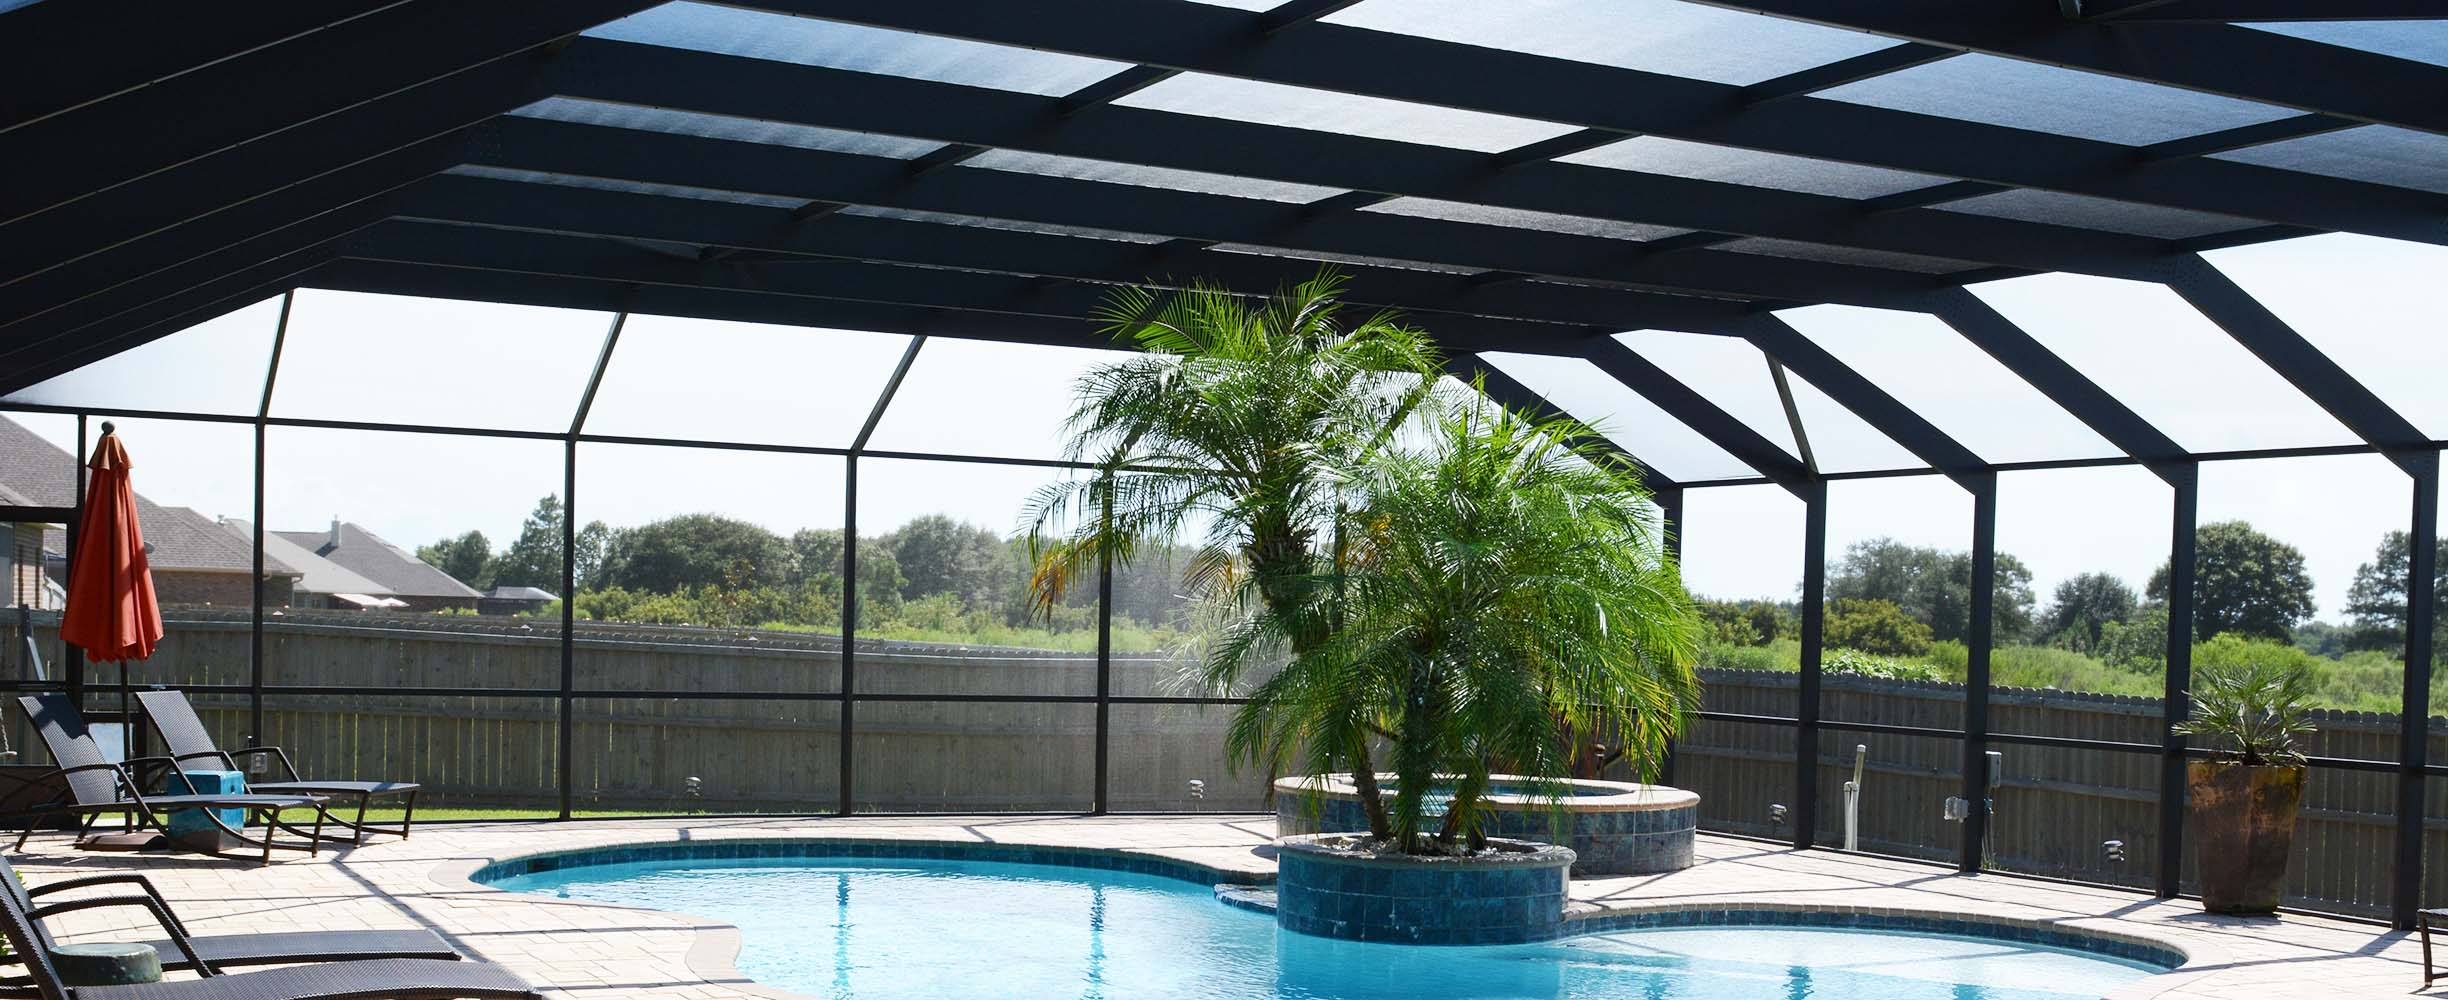 Southern Patio And Screens Pool Enclosures Sunrooms Screen Rooms Rescreens Patio Covers Car Ports Pergolas Summerdale Alabama Florida